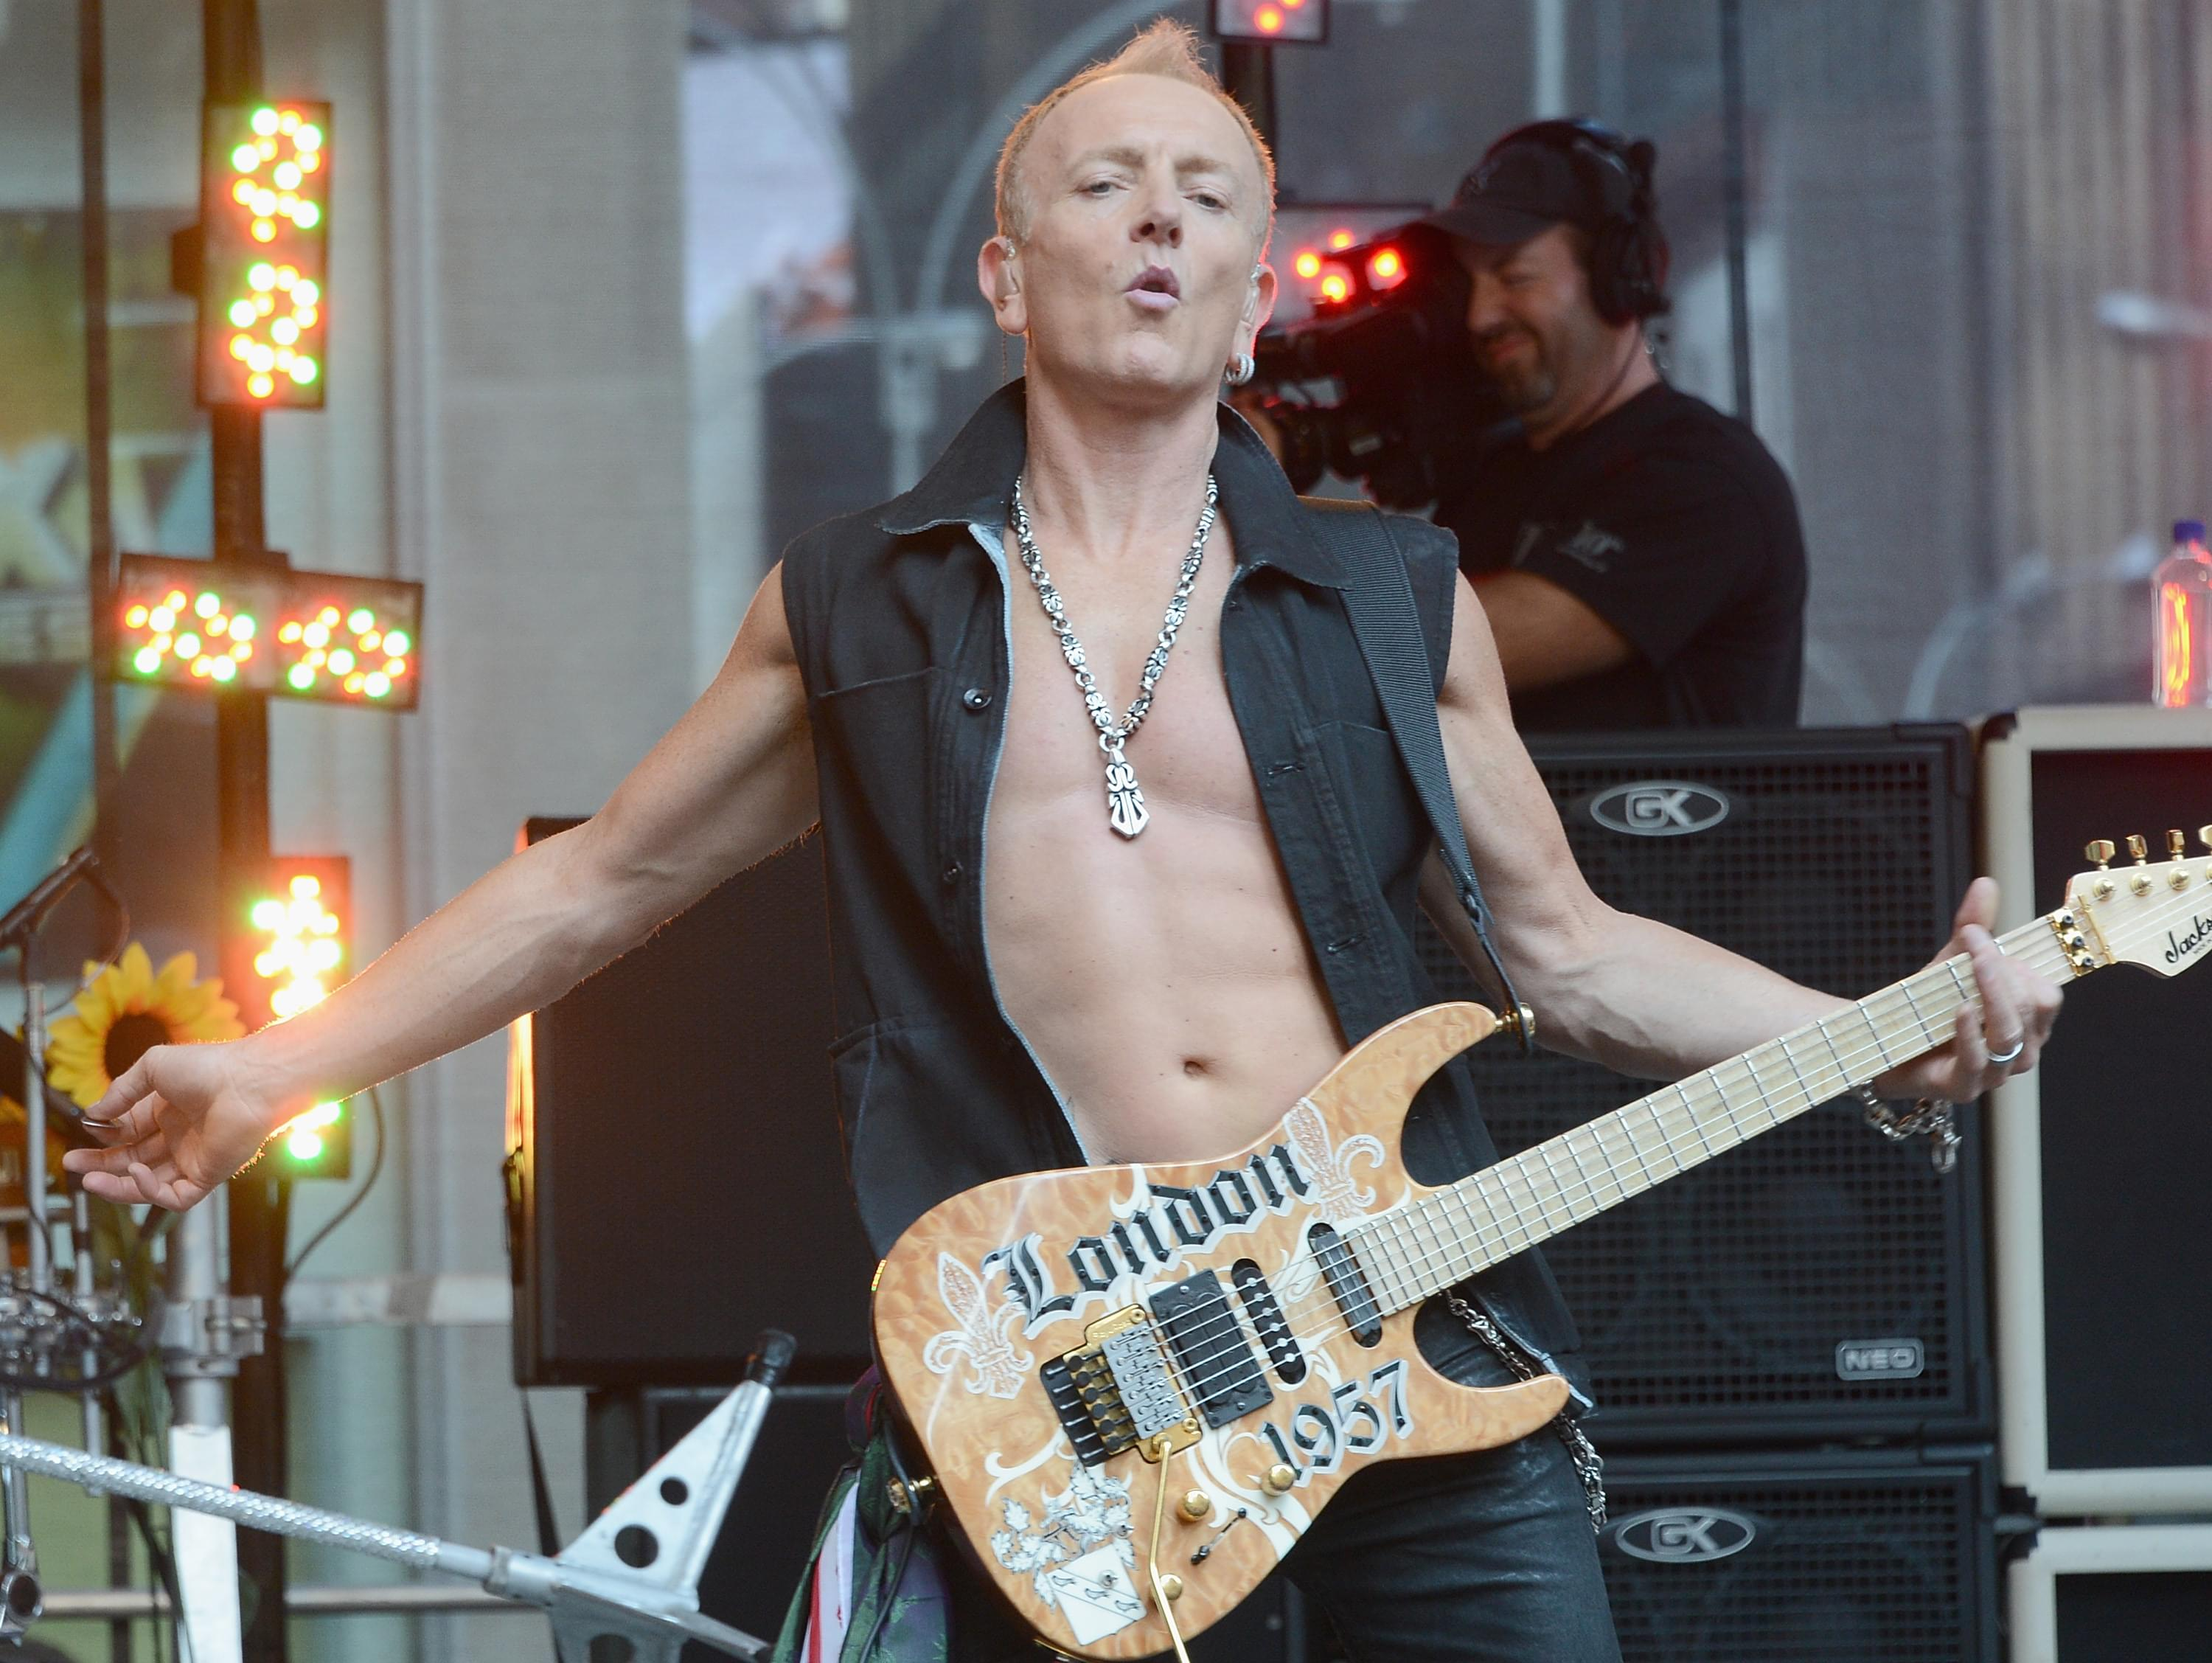 Def Leppard guitarist Phil Collen confirms new album in the works